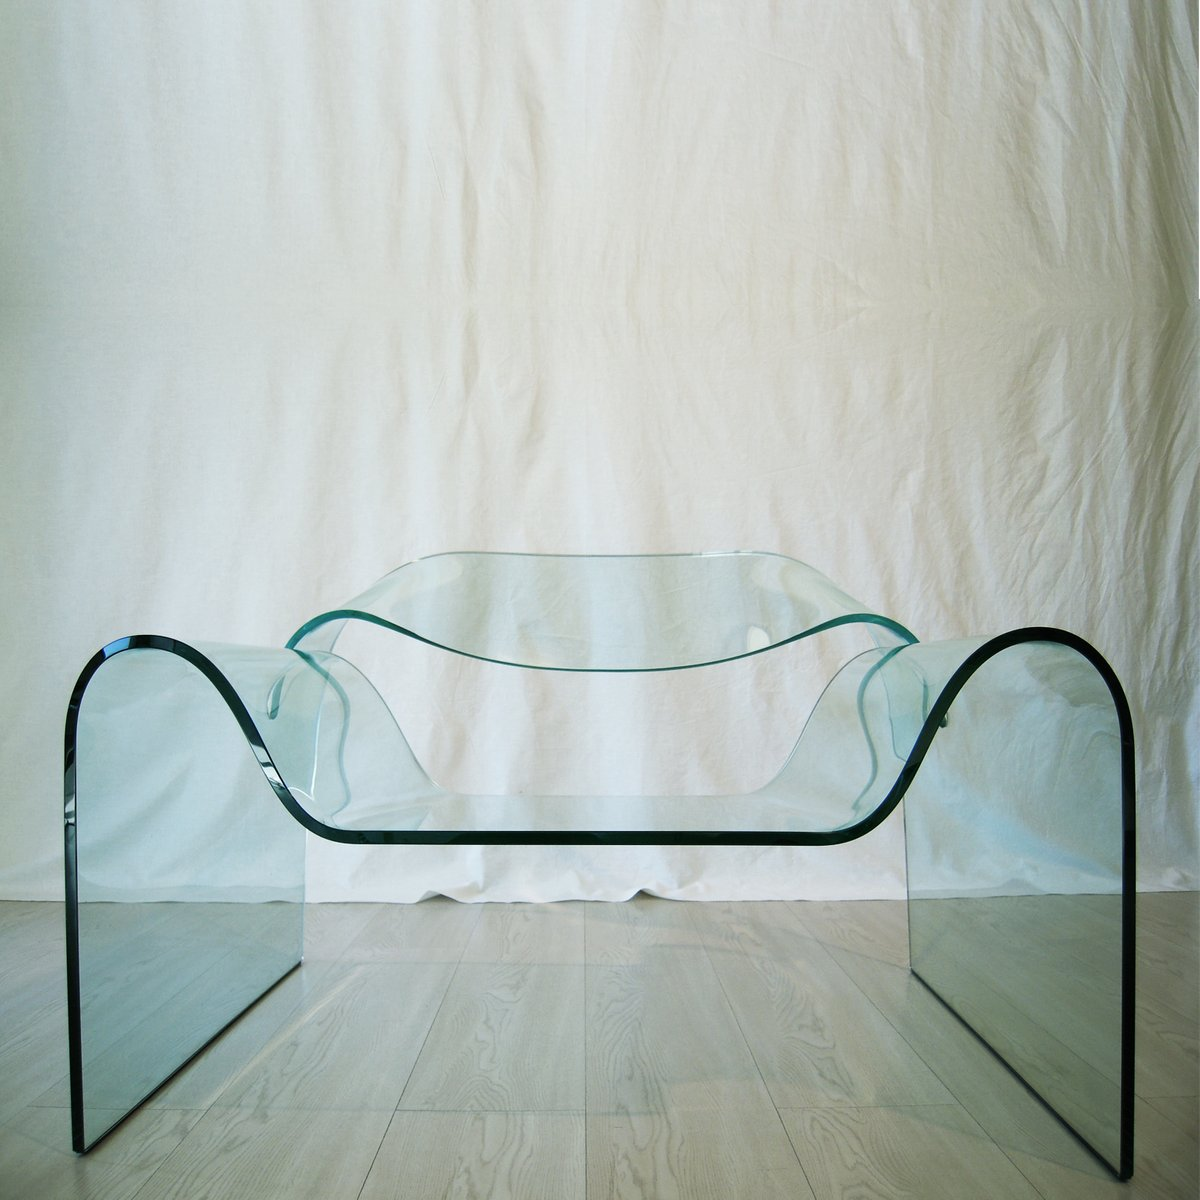 Ghost Glass Armchair By Cini Boeri Tomu Katayanagi For Fiam 1987 For S